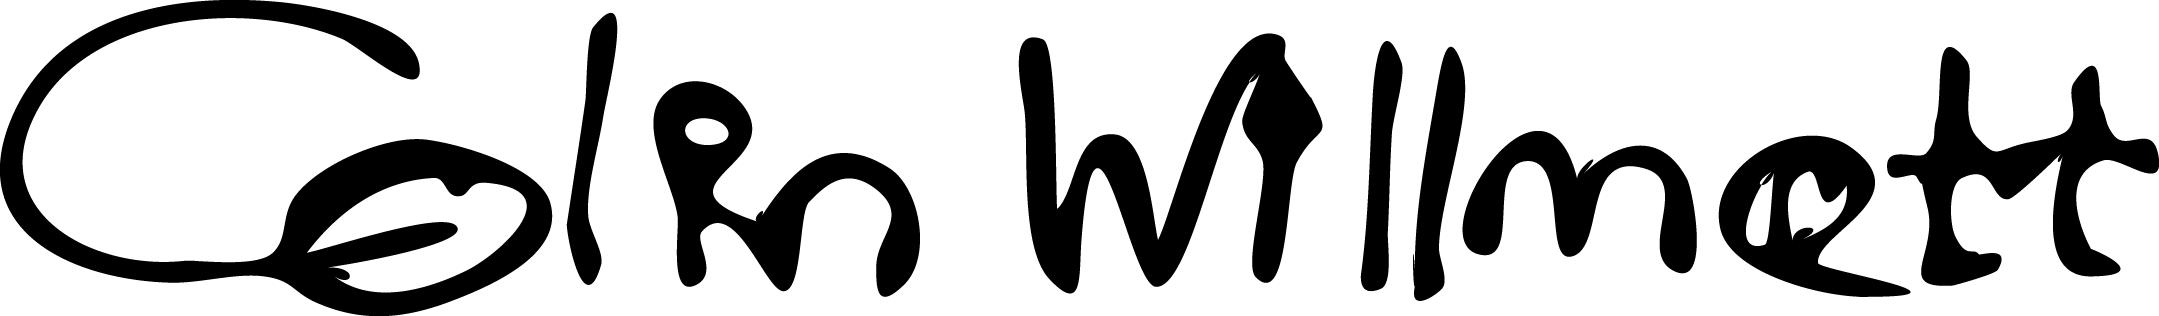 colin willmott's Signature